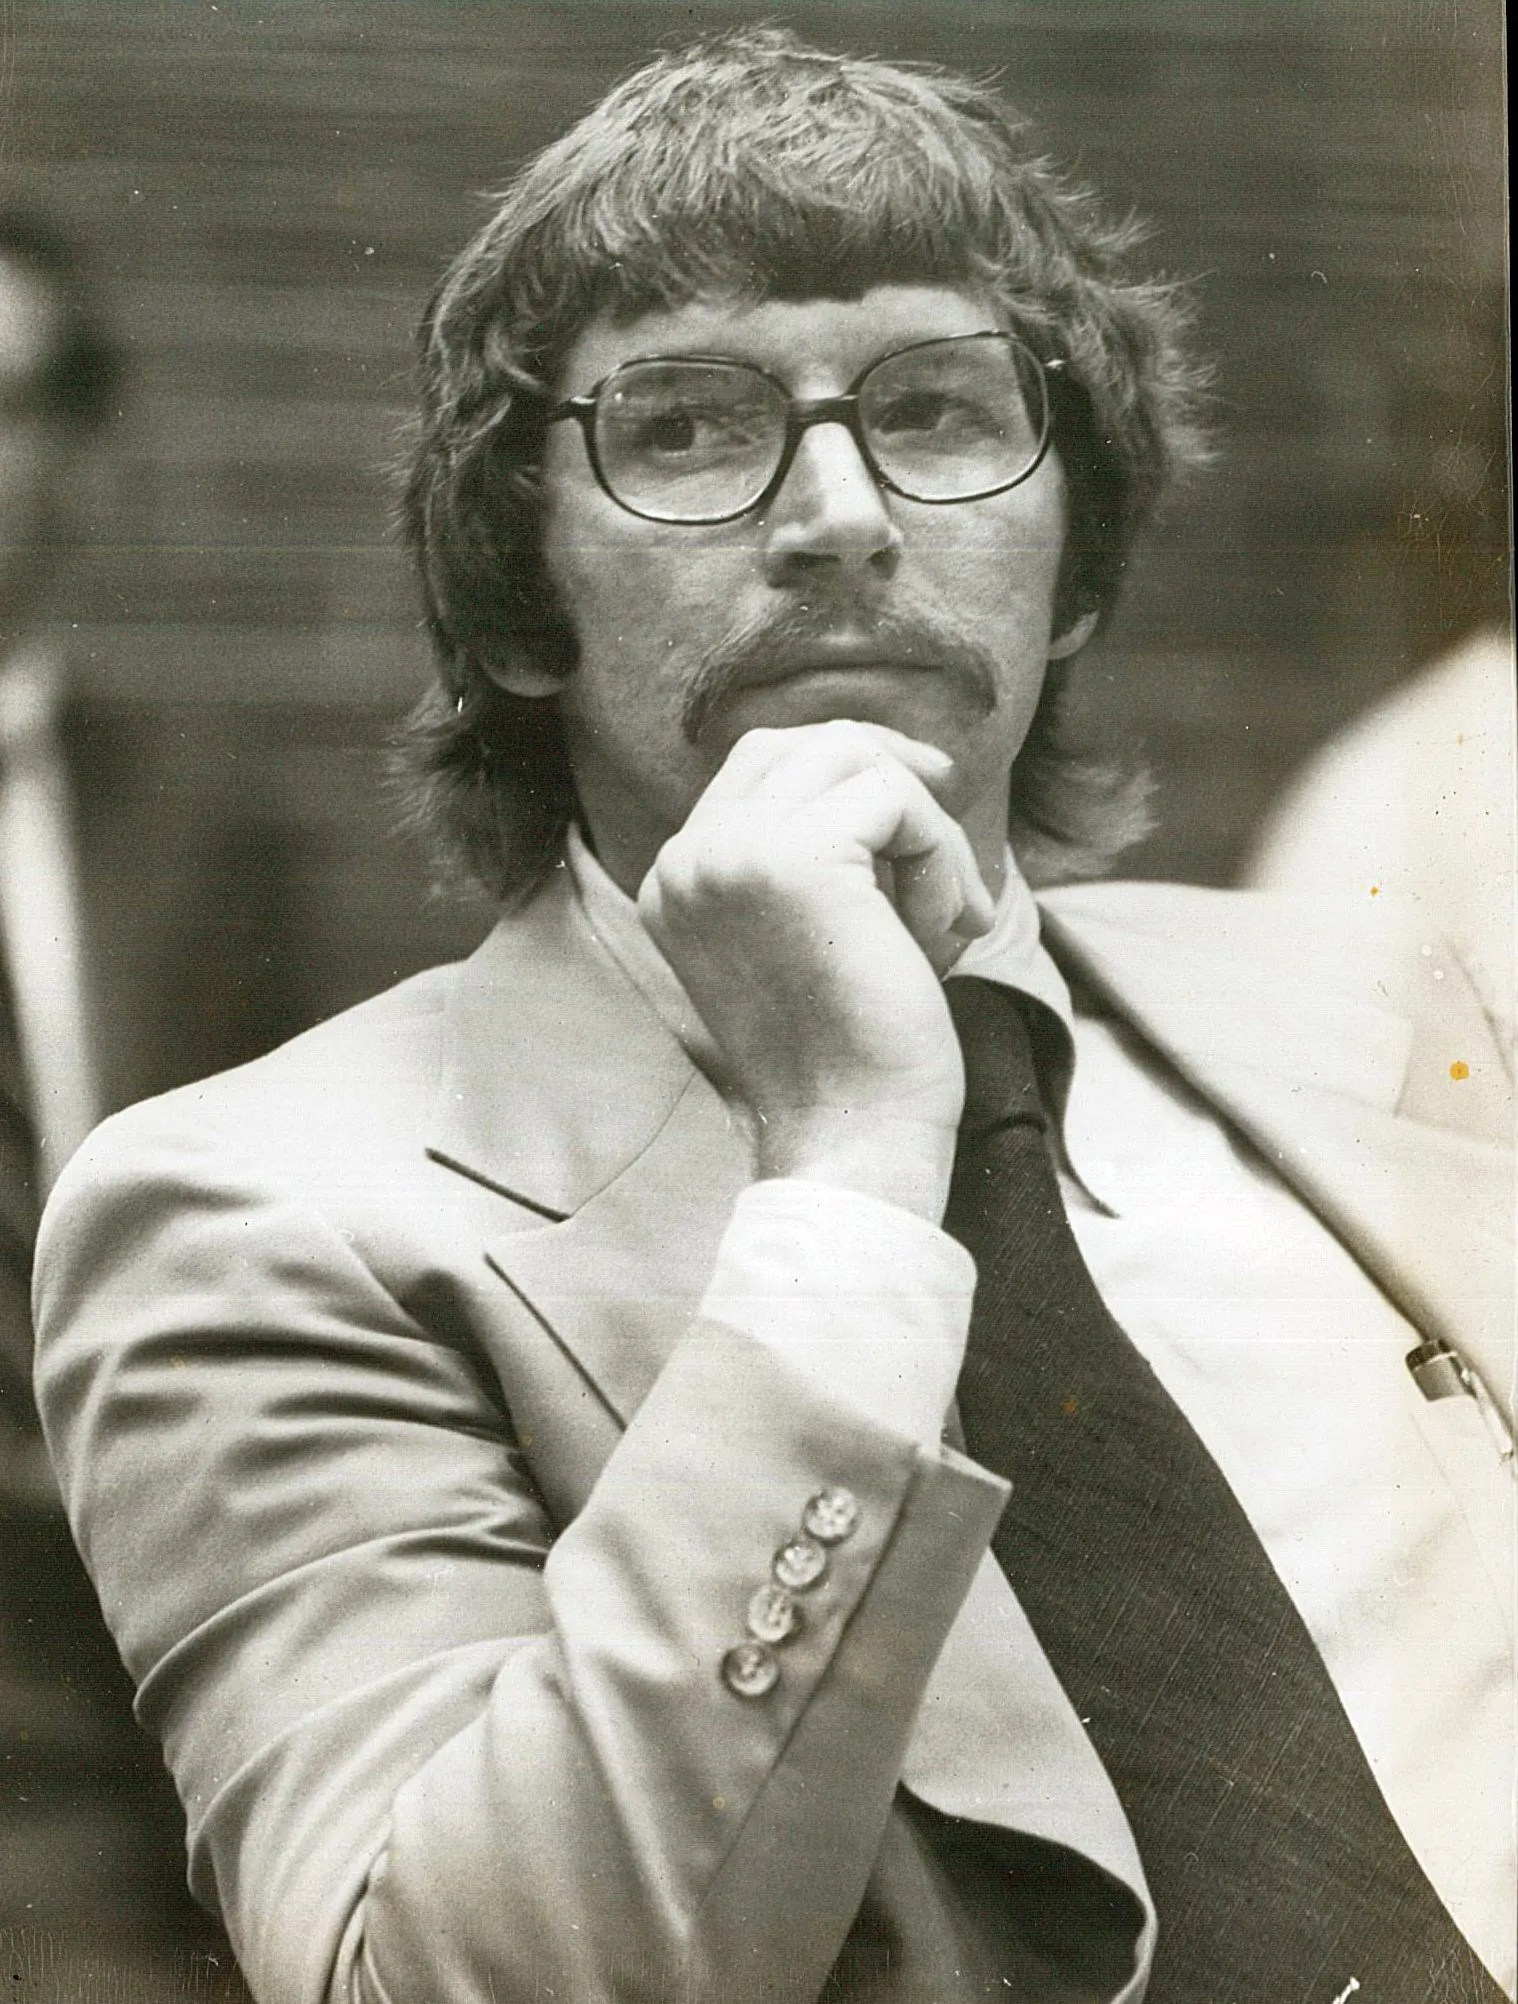 Jay Bender in his law school days. (Picture from Osceola)